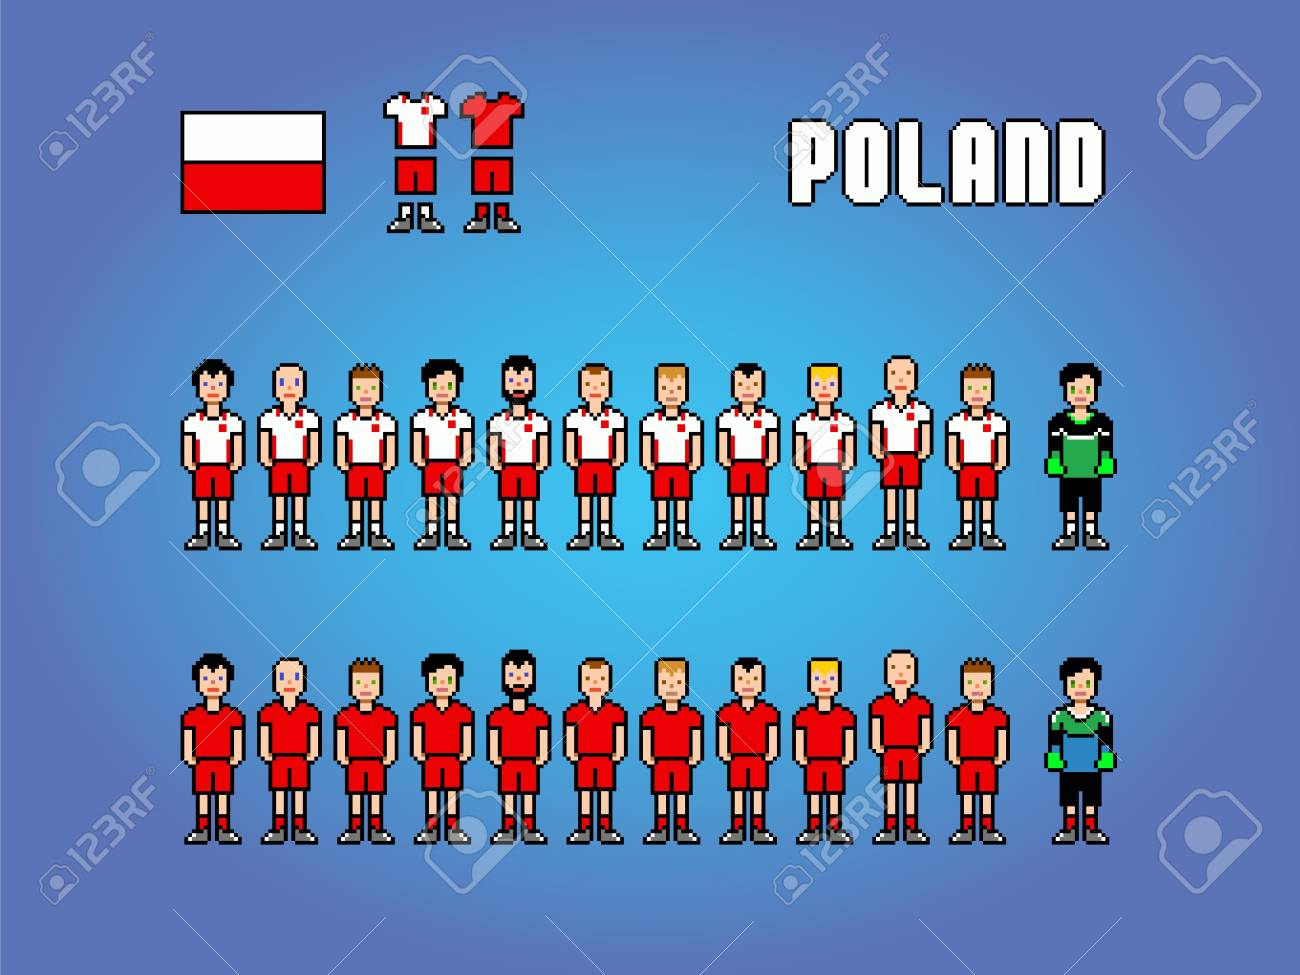 Poland Football Soccer Player Uniform Pixel Art Game Illustration